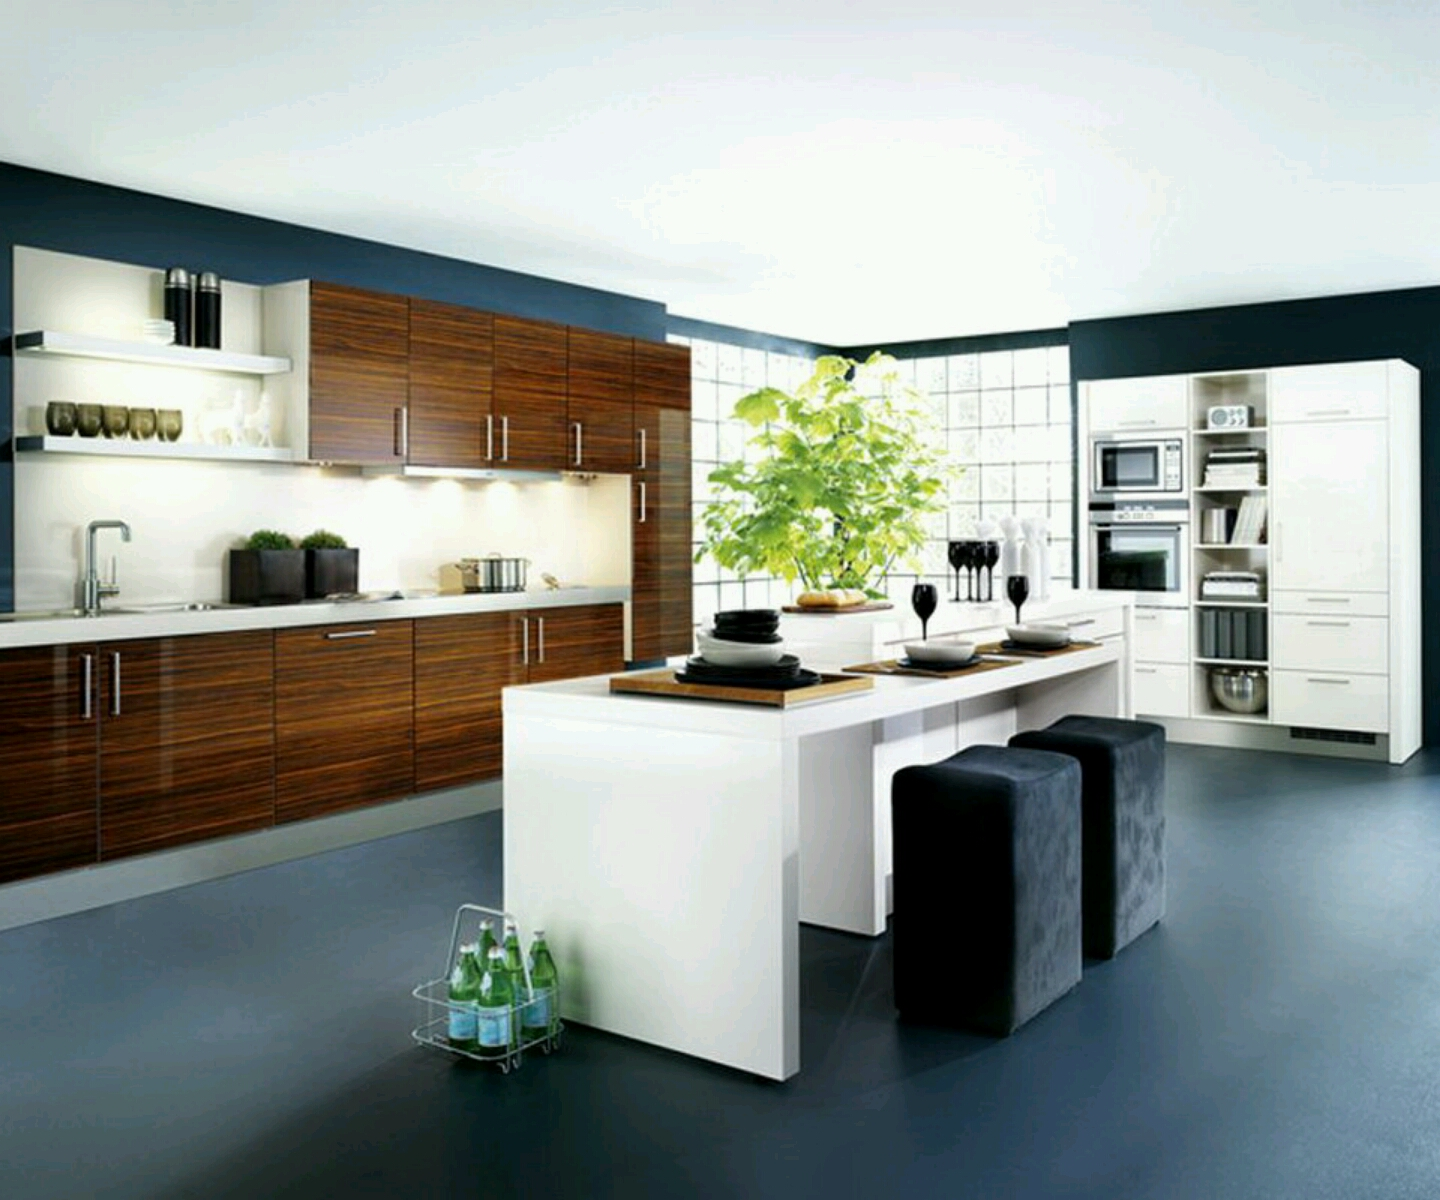 New home designs latest kitchen cabinets designs modern for Modern kitchen design ideas